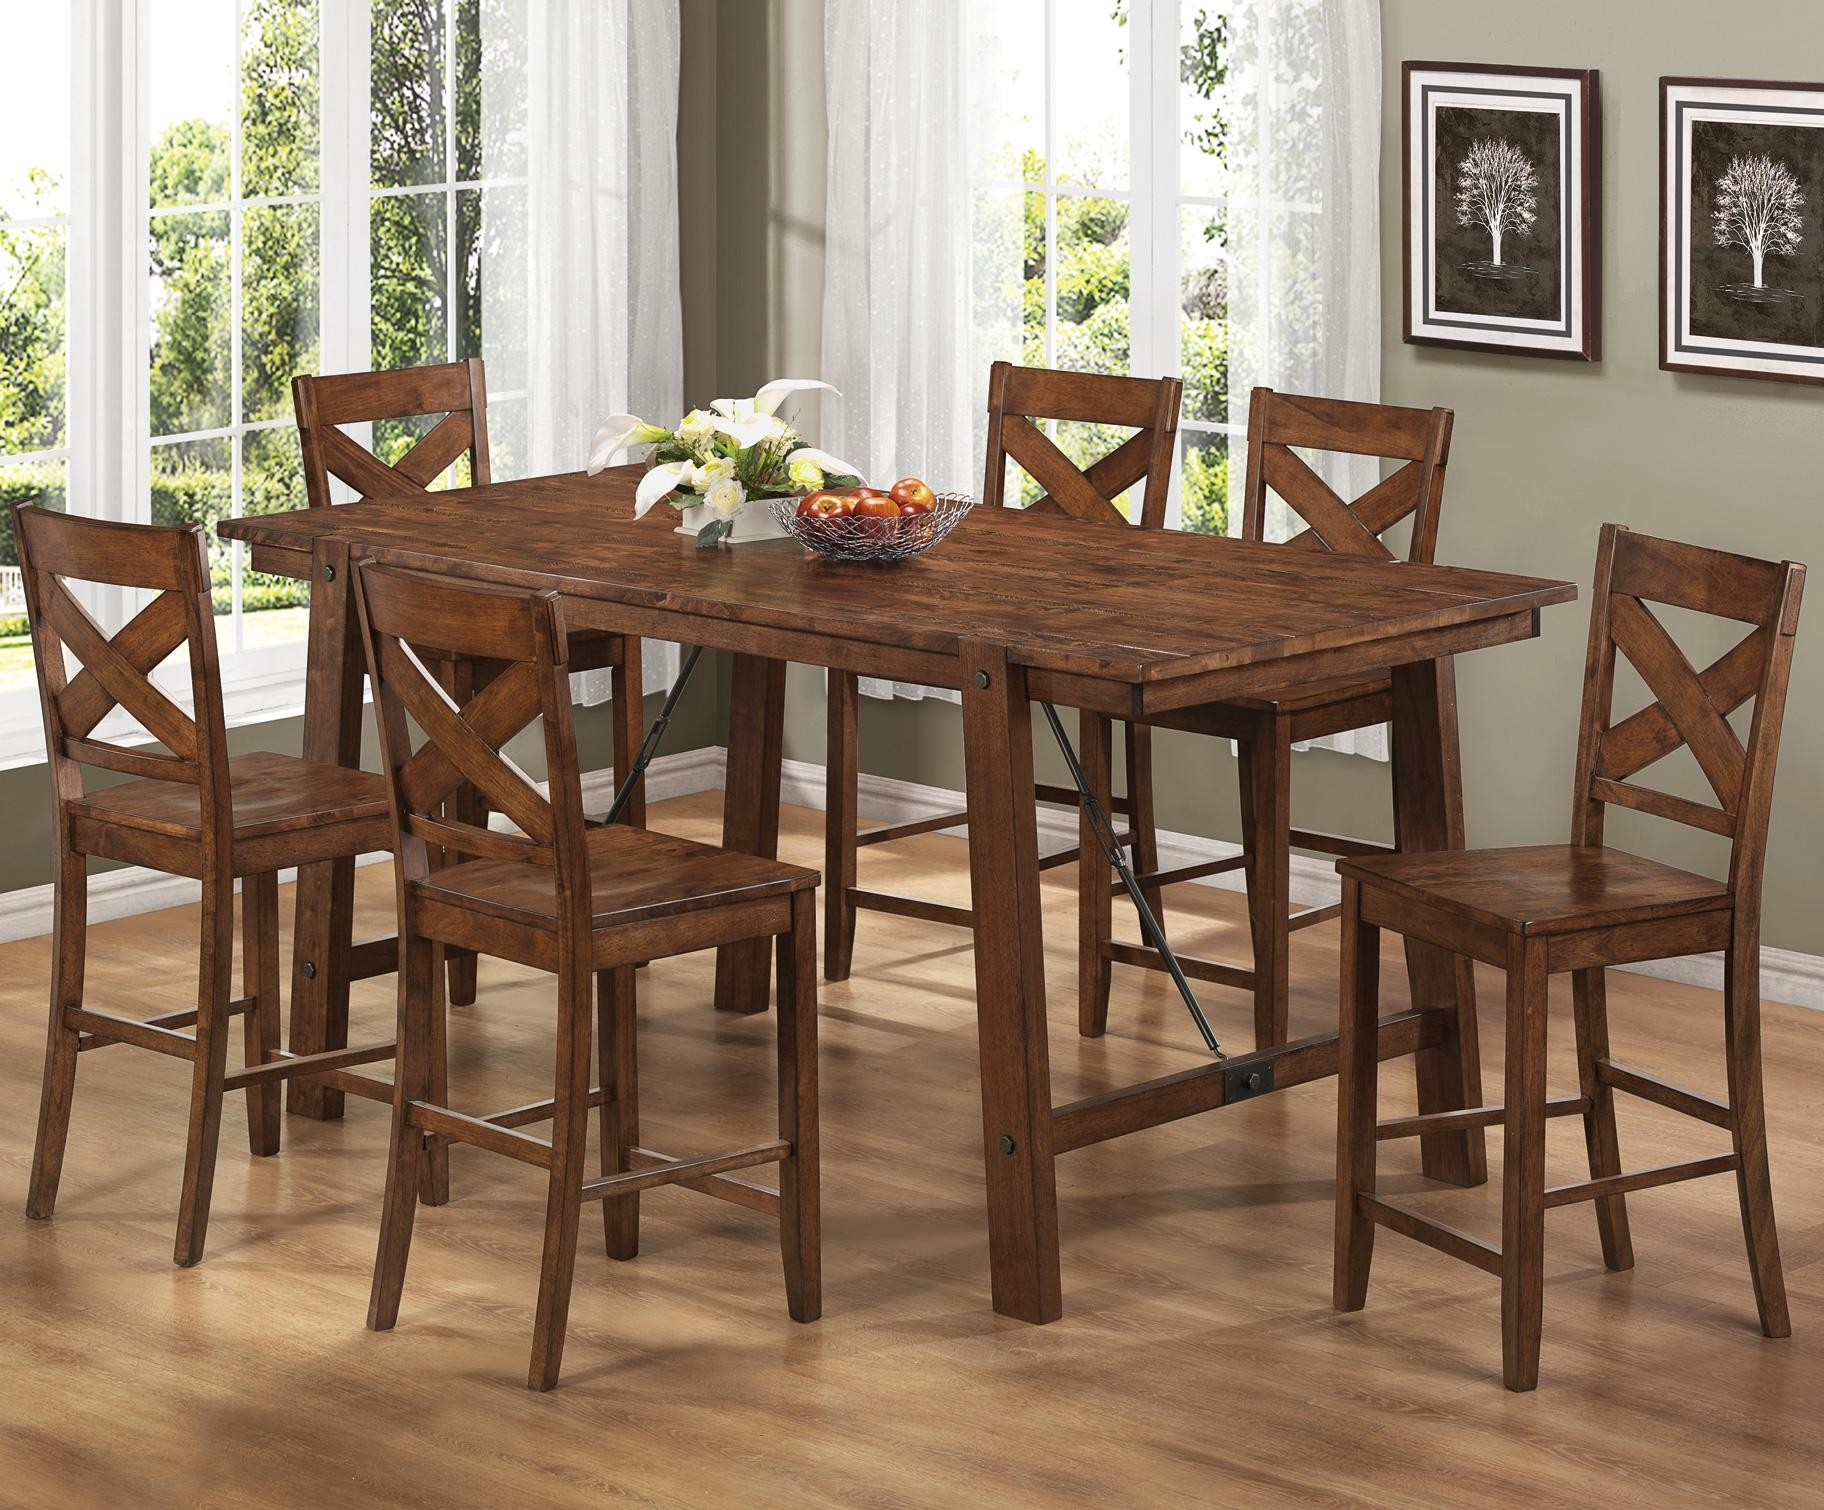 Nervous Kitchen Furniture With Rectangular Wooden Dining Table and Chairs